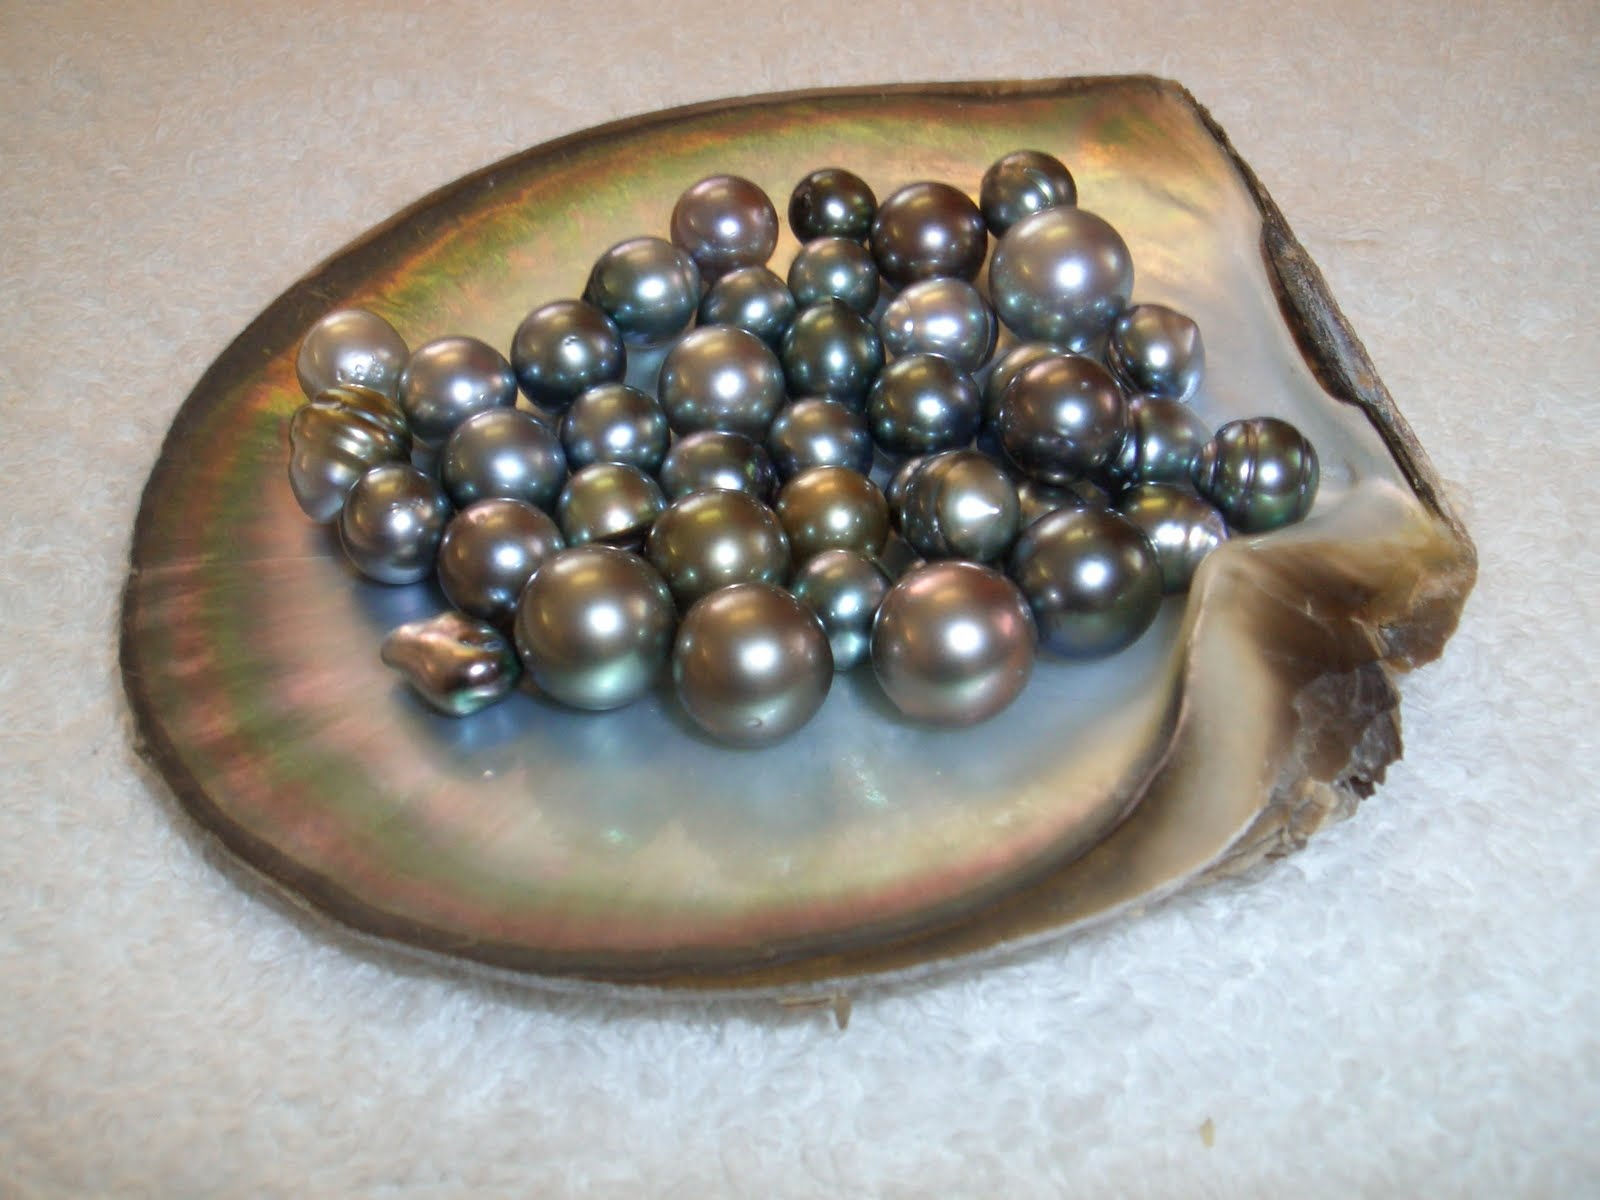 Susan Ronan Studio: All About Pearls